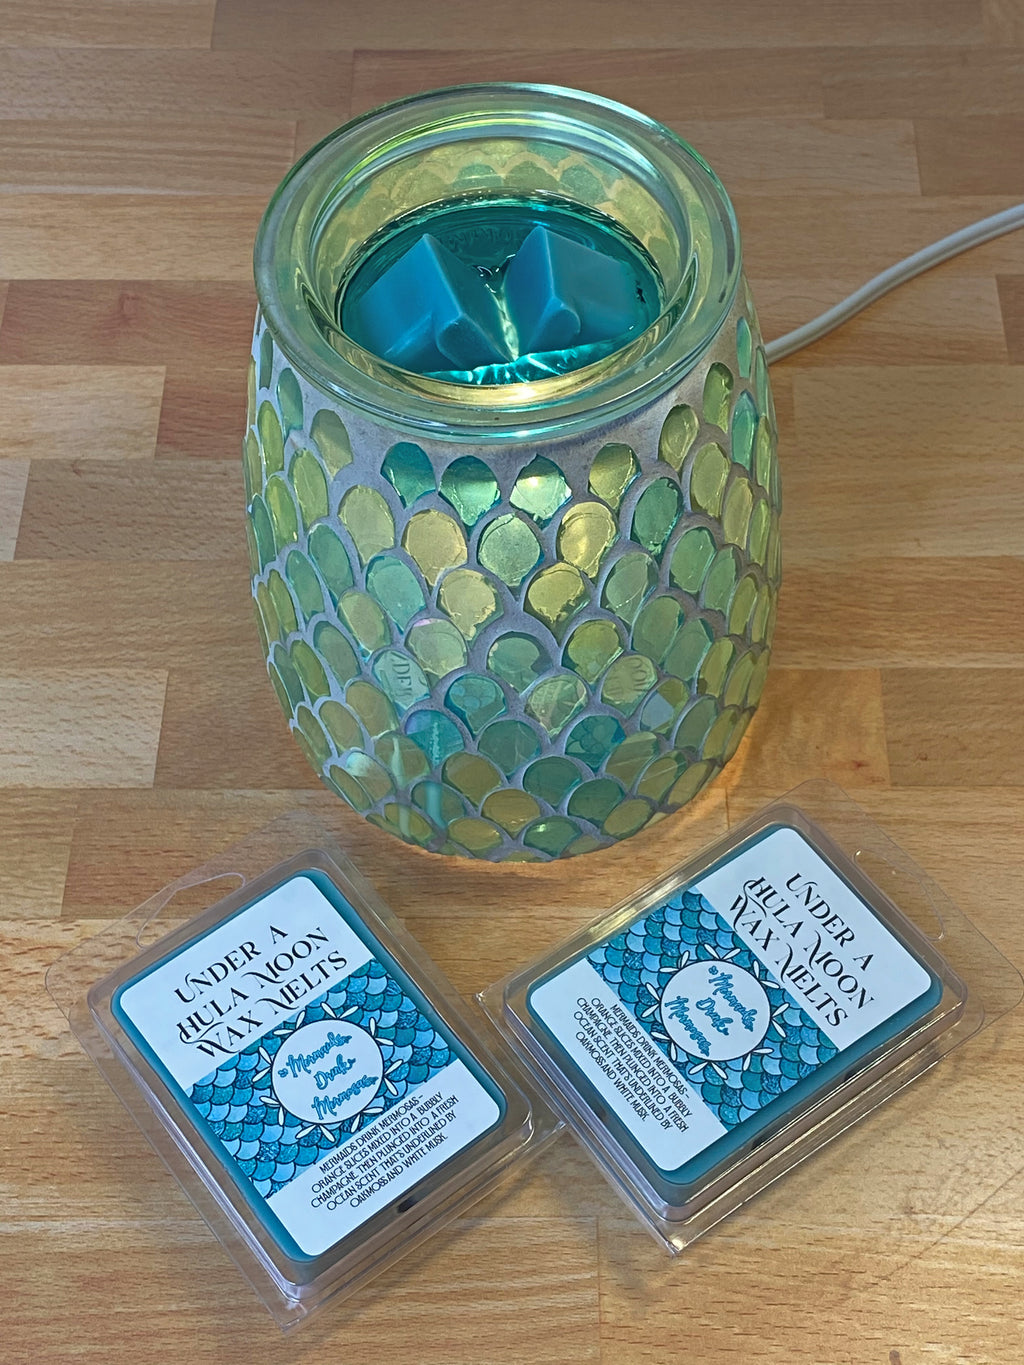 Mermaids Drink Mermosas Wax Melts